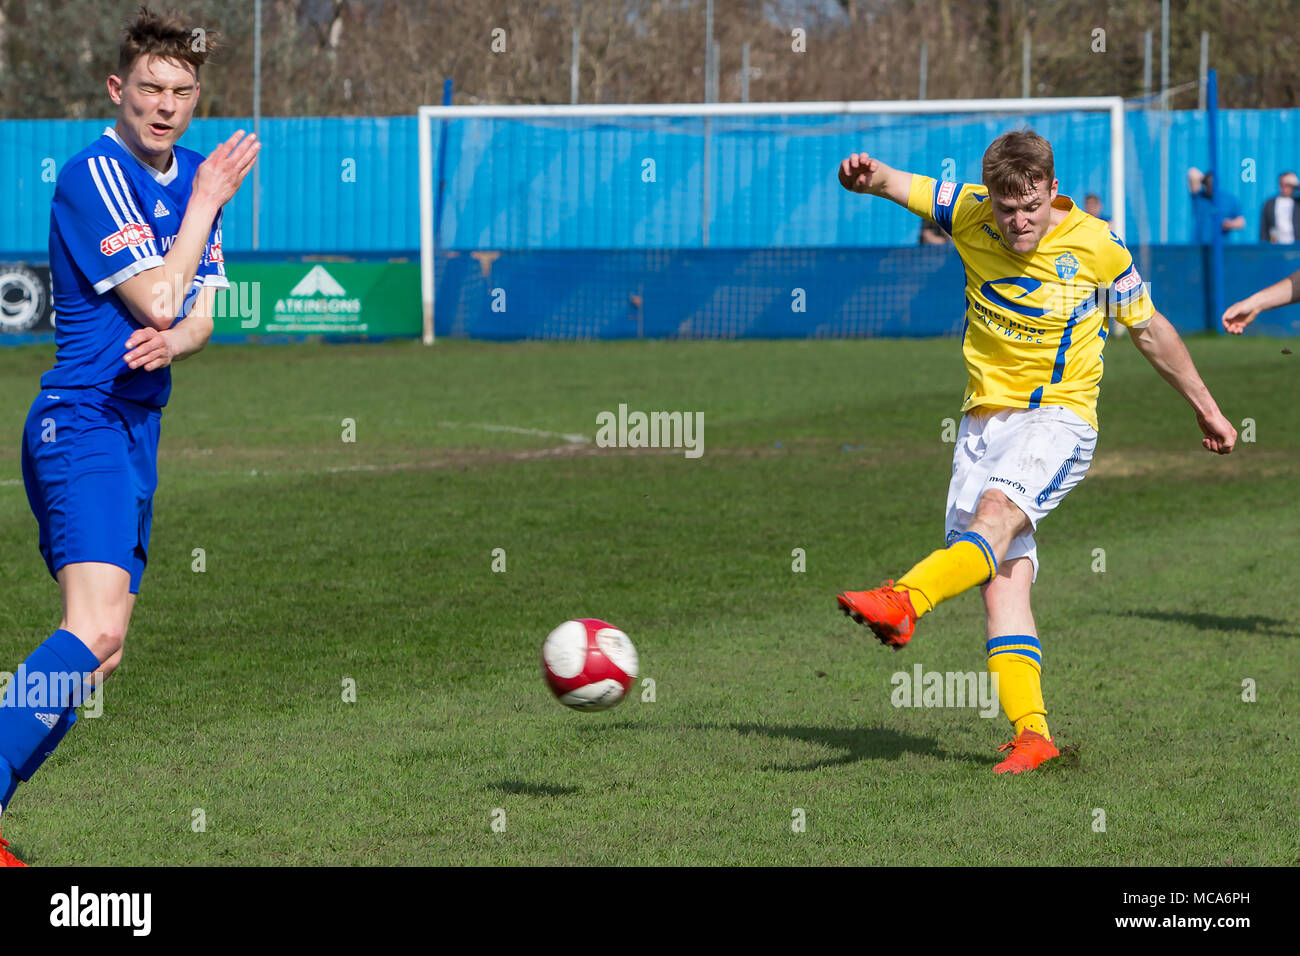 Farsley, UK, 14 April 2018. Warrington Town's midfielder, Will Hayhurst, scores the first goal against Farsley Celtic during Warrington's 2-0 win on Saturday 14 April 2018 in the top of the table clash near the end of the season Credit: John Hopkins/Alamy Live News Credit: John Hopkins/Alamy Live News - Stock Image